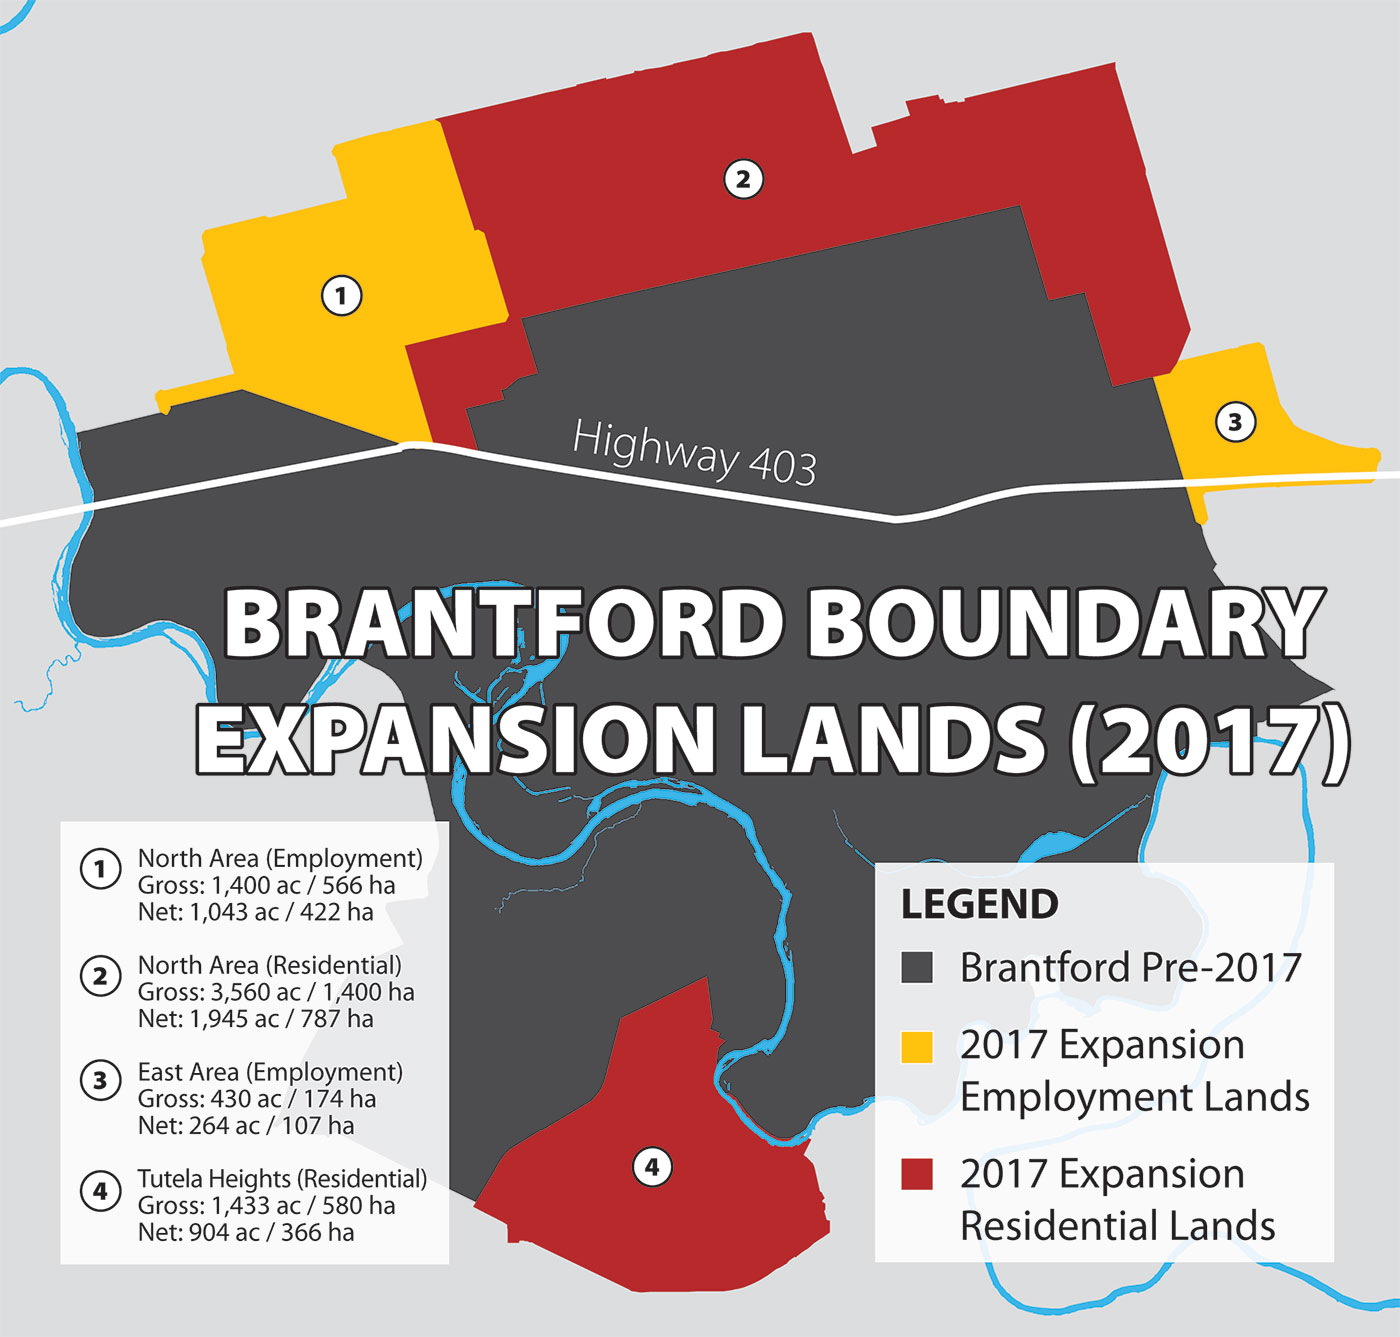 map of Brantford with 2017 Expansion Boundary Lands